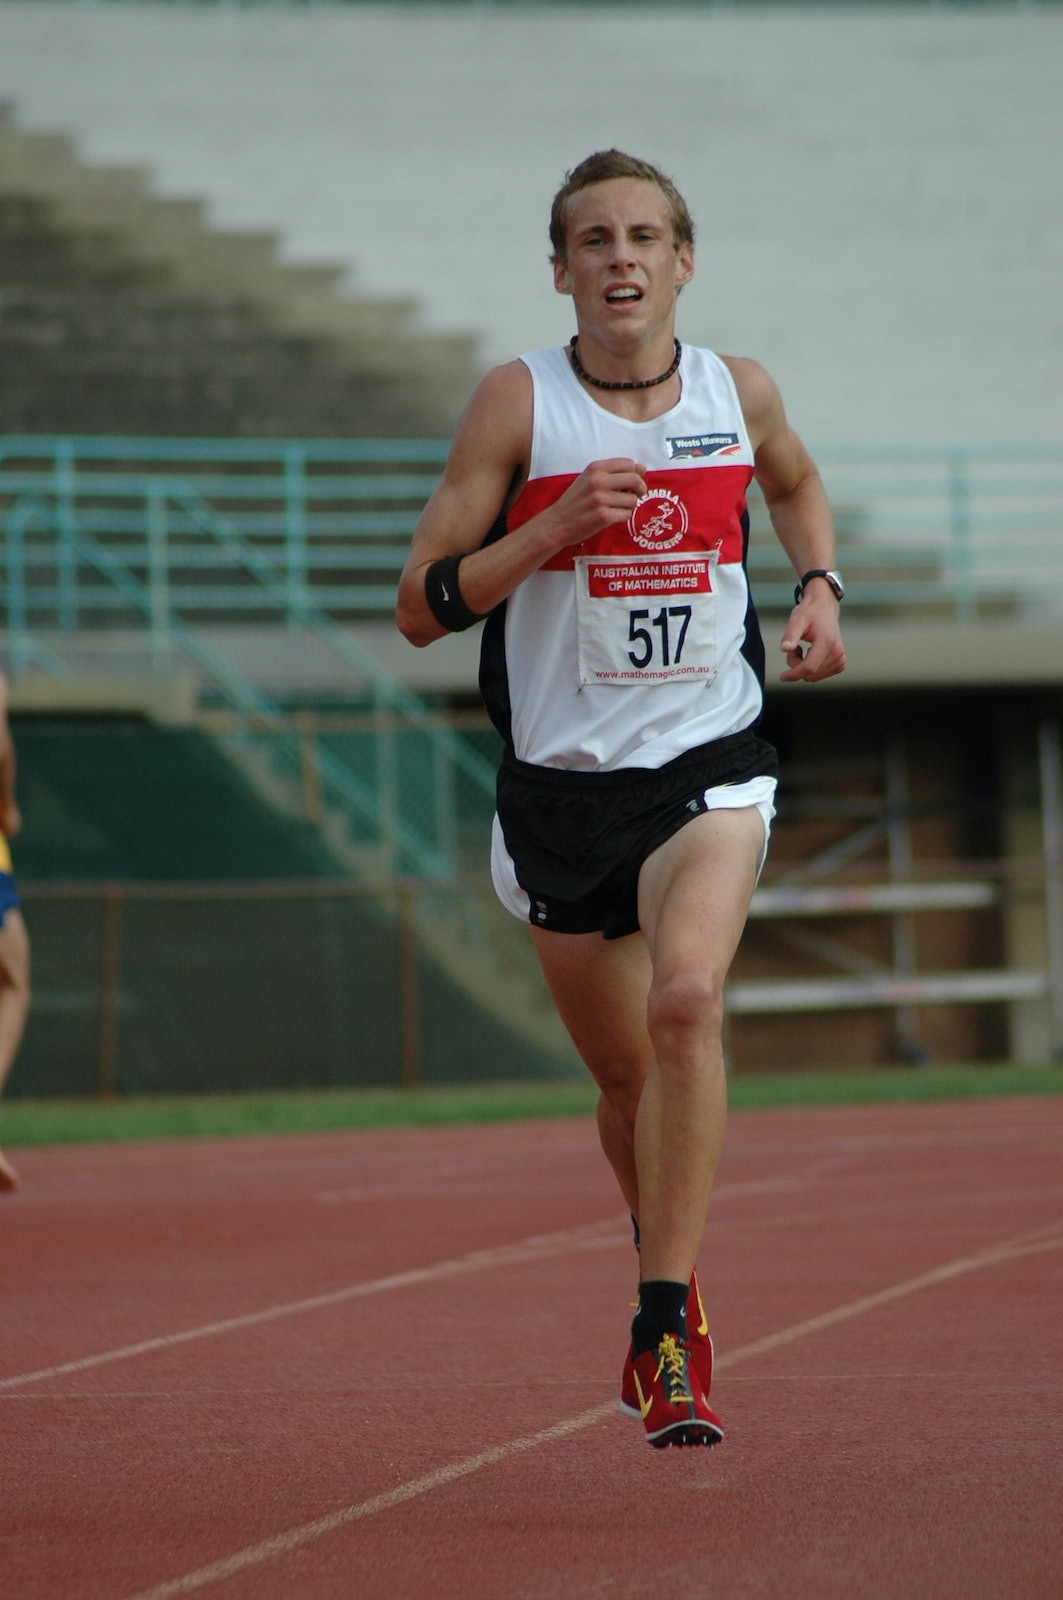 Ryan Gregson - Ryan Gregson on his way to setting the NSW U18 5000m Championships at ES Marks in November 2007.